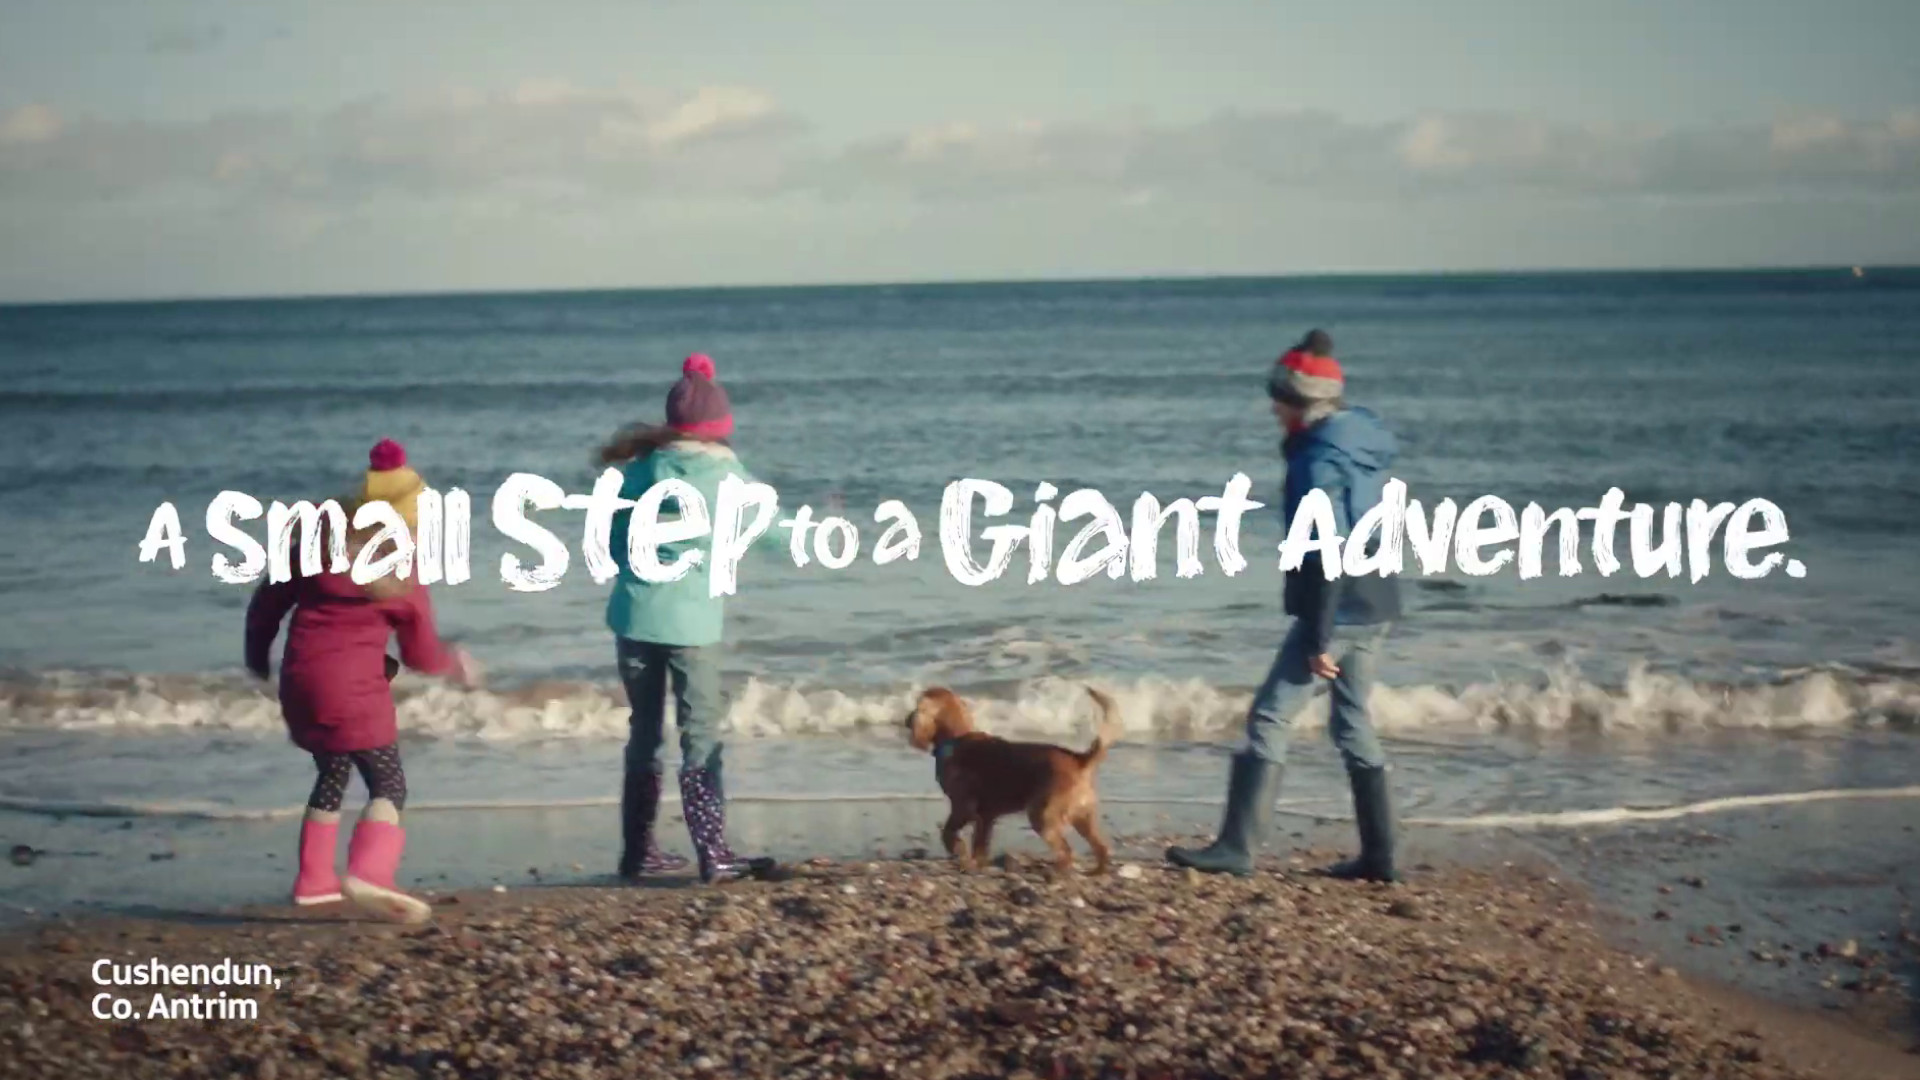 A Small Step to A Giant Adventure campaign of Northern Ireland